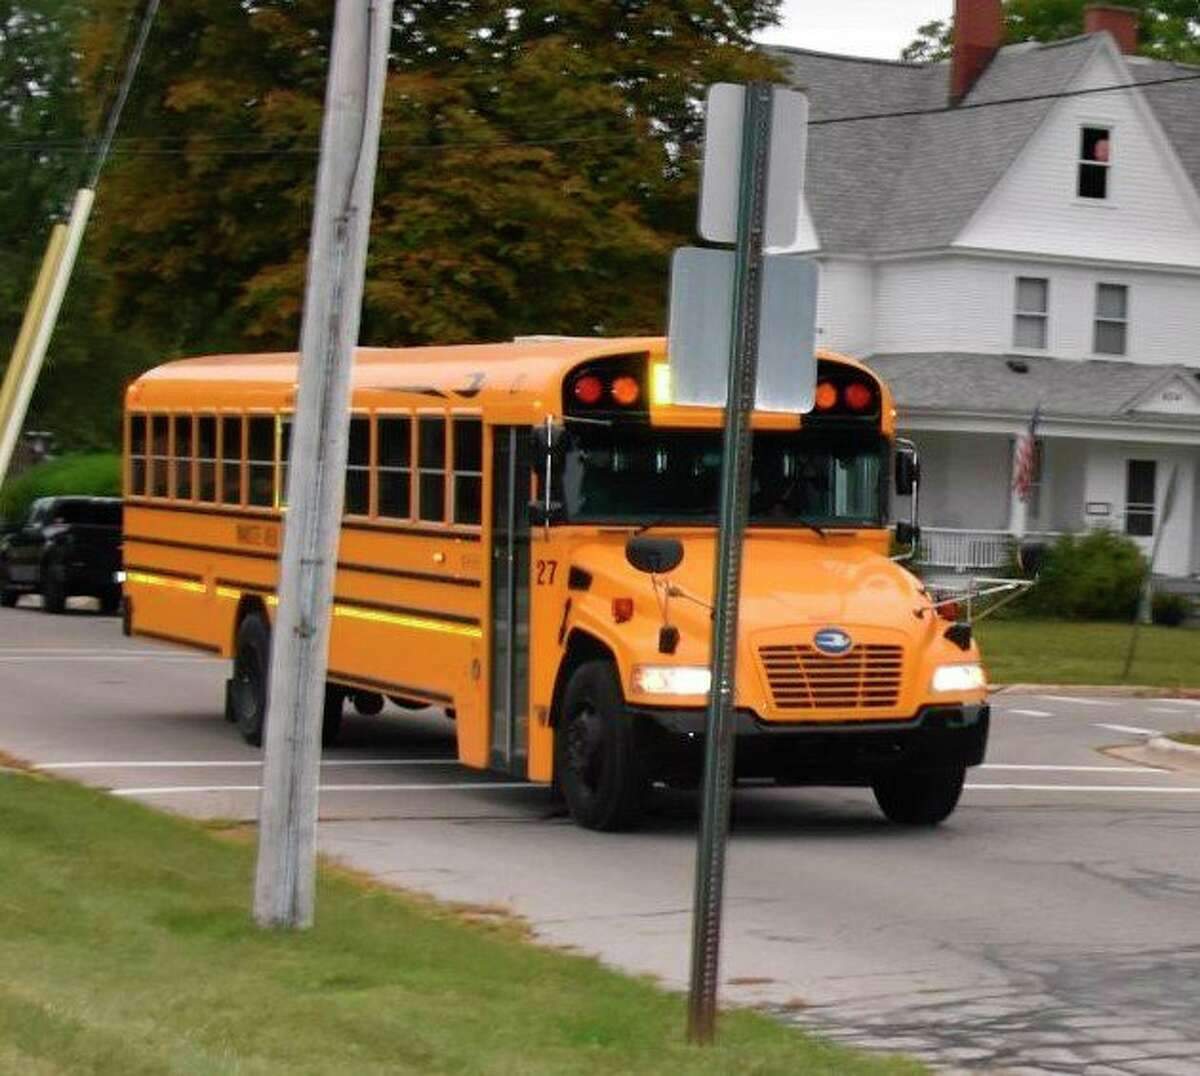 A school bus reaches Jefferson Elementary School on Sept. 8. All buildings in the Manistee Area Public Schools district were closed Thursday after a bus driver tested positive for COVID-19. Students will learn remotely on Friday and the board of education will hold an emergency meeting on Nov. 20 to determine the district's next course of action. (File photo)